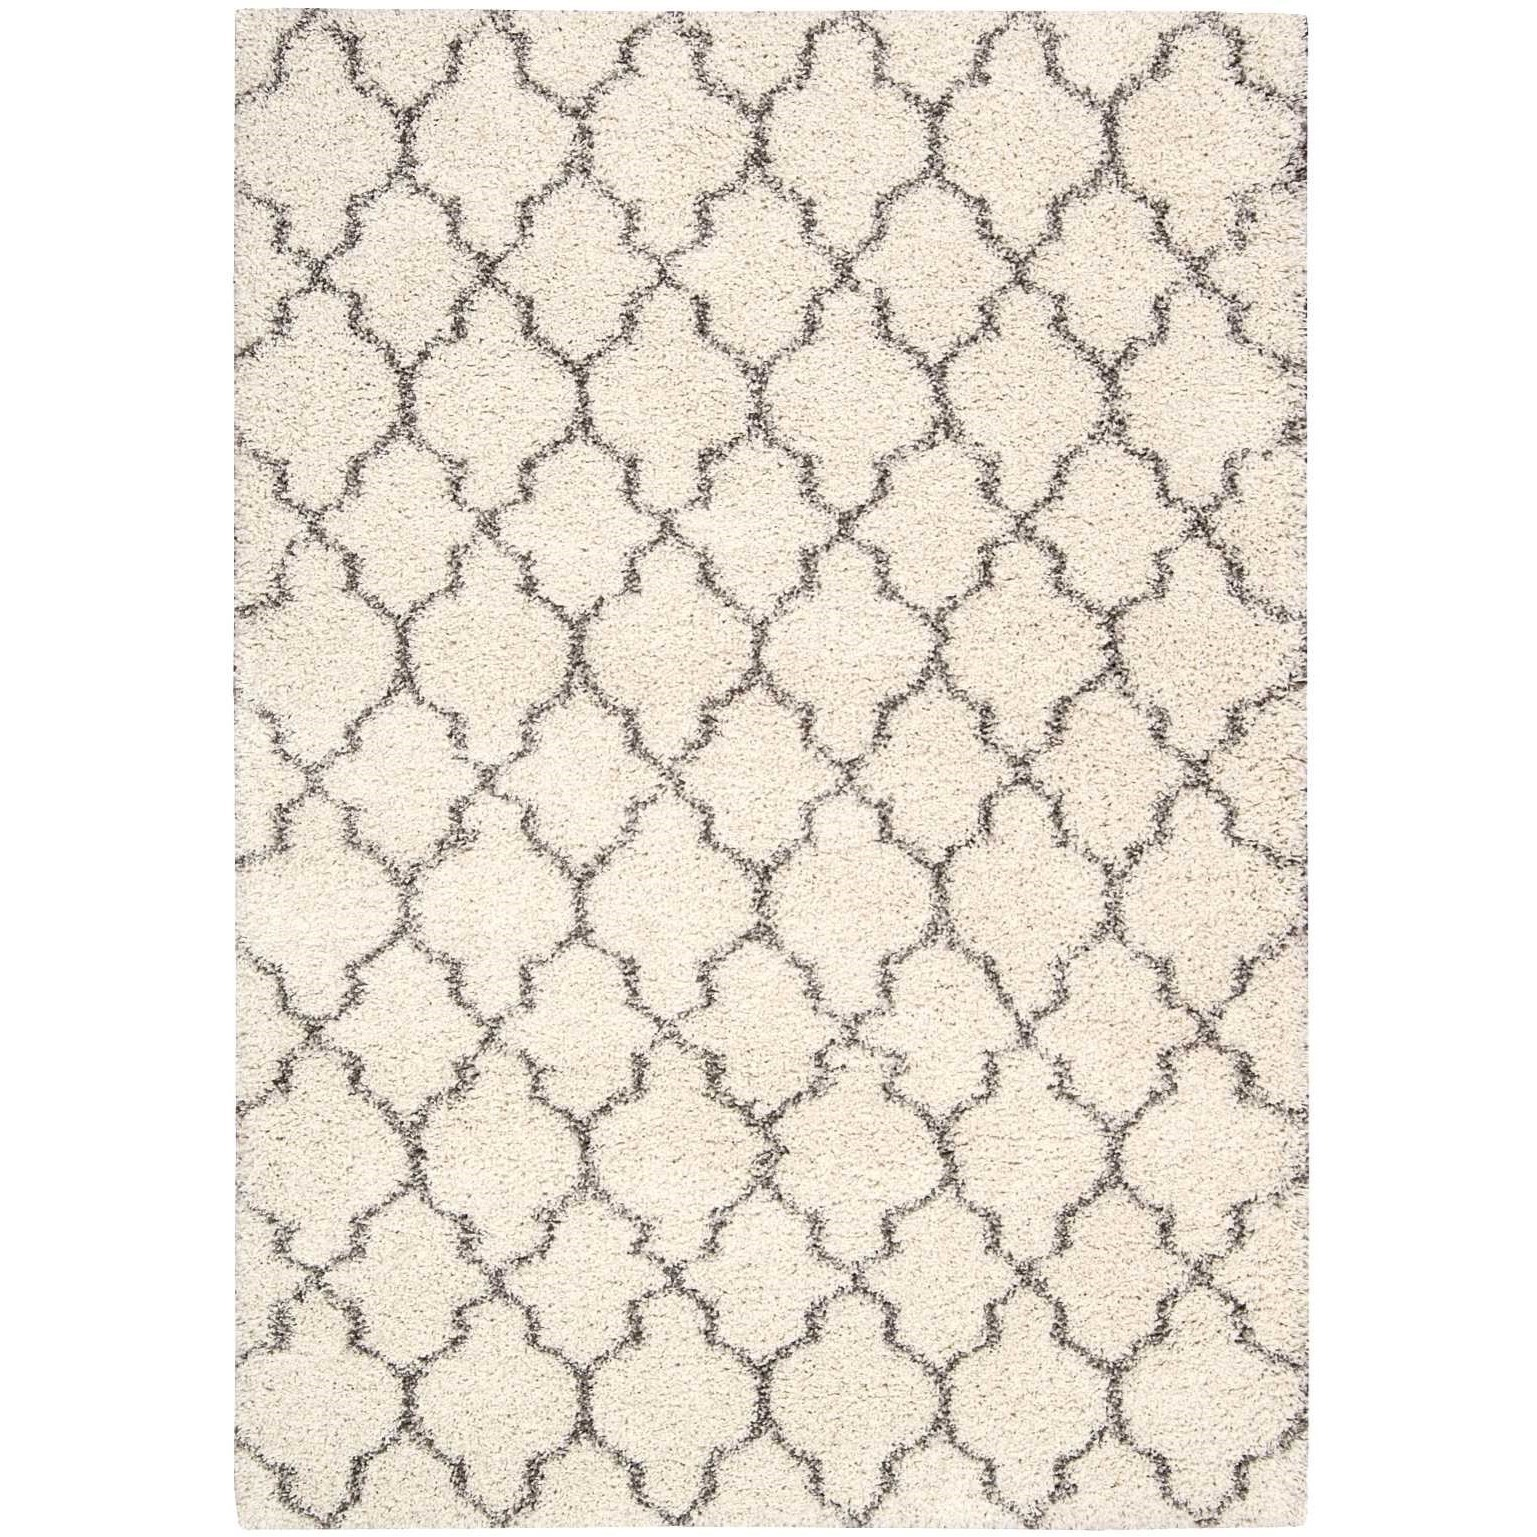 "Amore 6'7"" x 9'6"" Cream Rectangle Rug by Nourison at Home Collections Furniture"